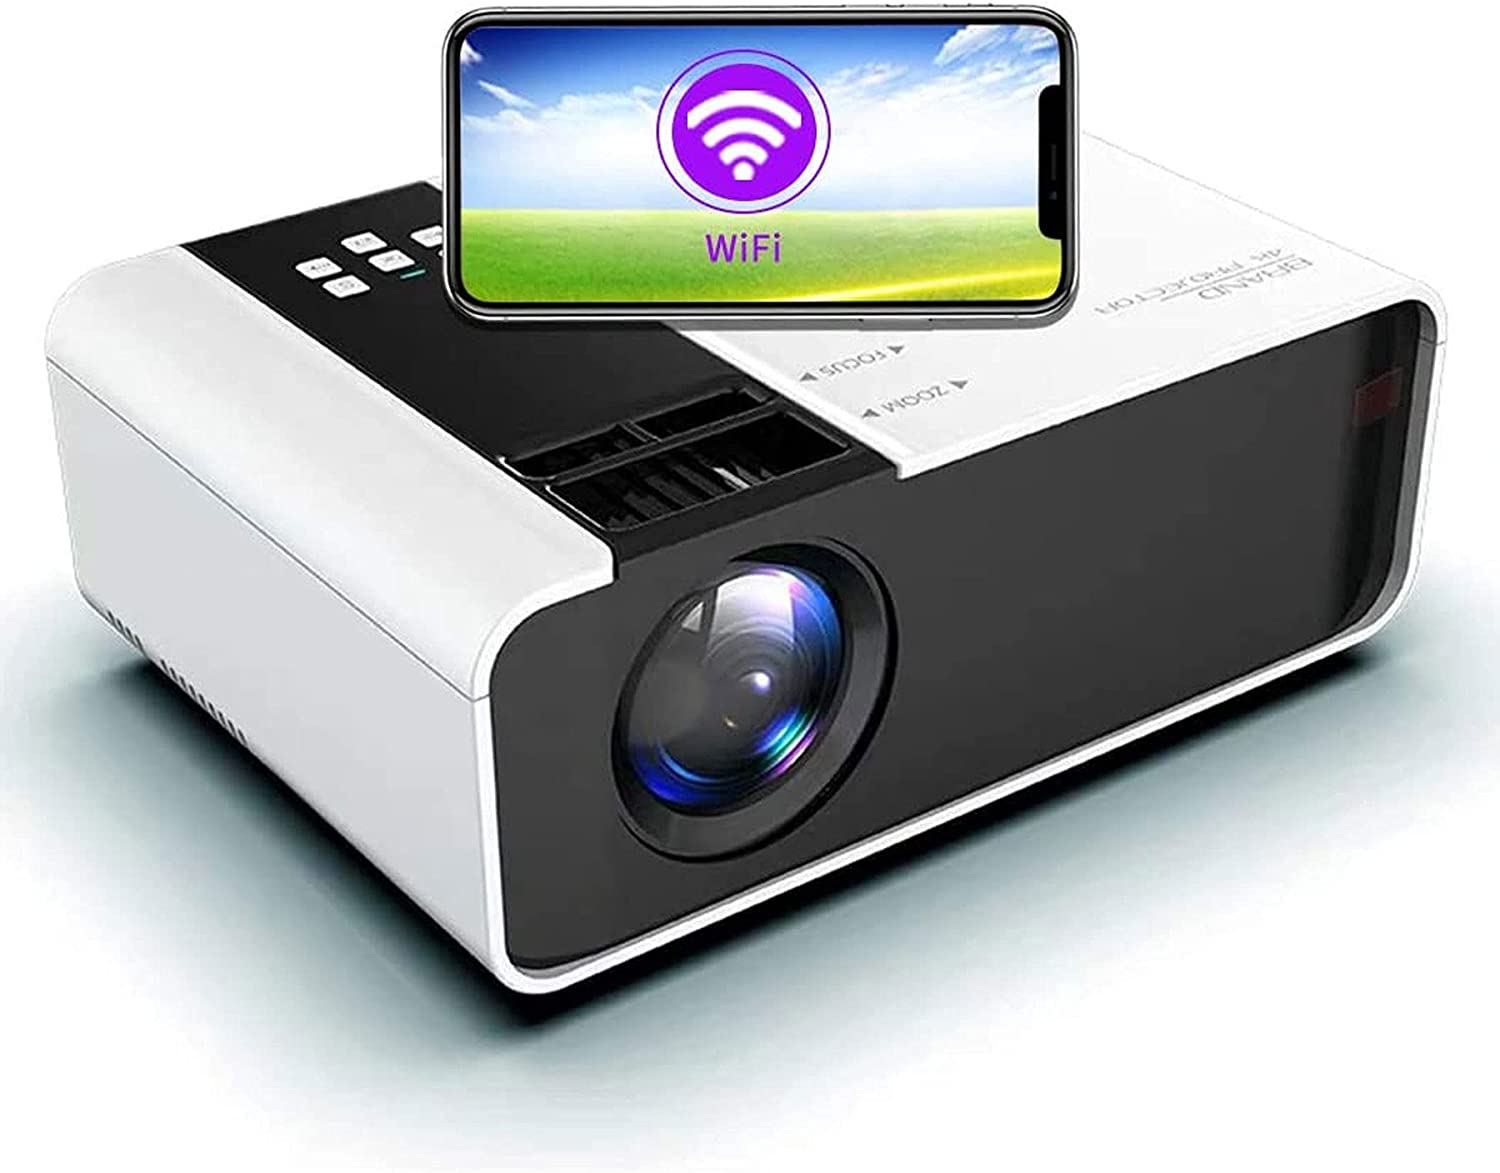 Mini LED Projector Portable -WiFi Video Projectors 1080P Full HD for Smartphone Wireless Projector HDMI 75000 Hours Multimedia 4K Home Projector Office Theater Movie